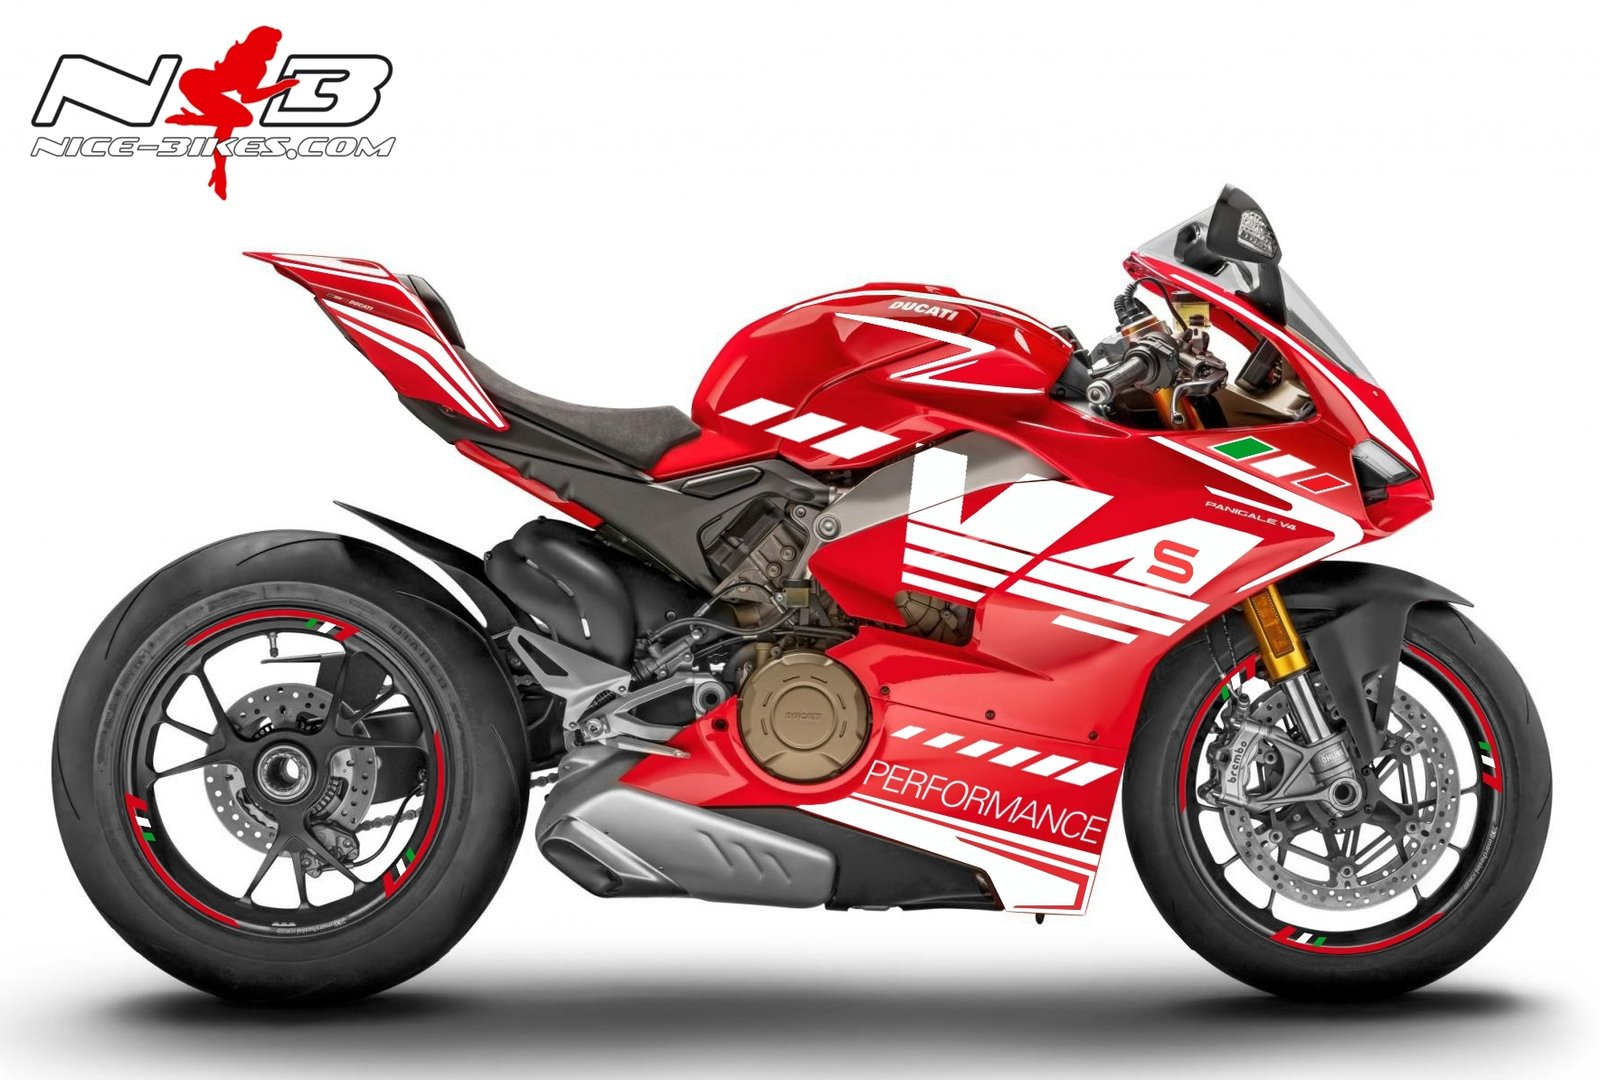 Panigale V4S weiß-tricolor